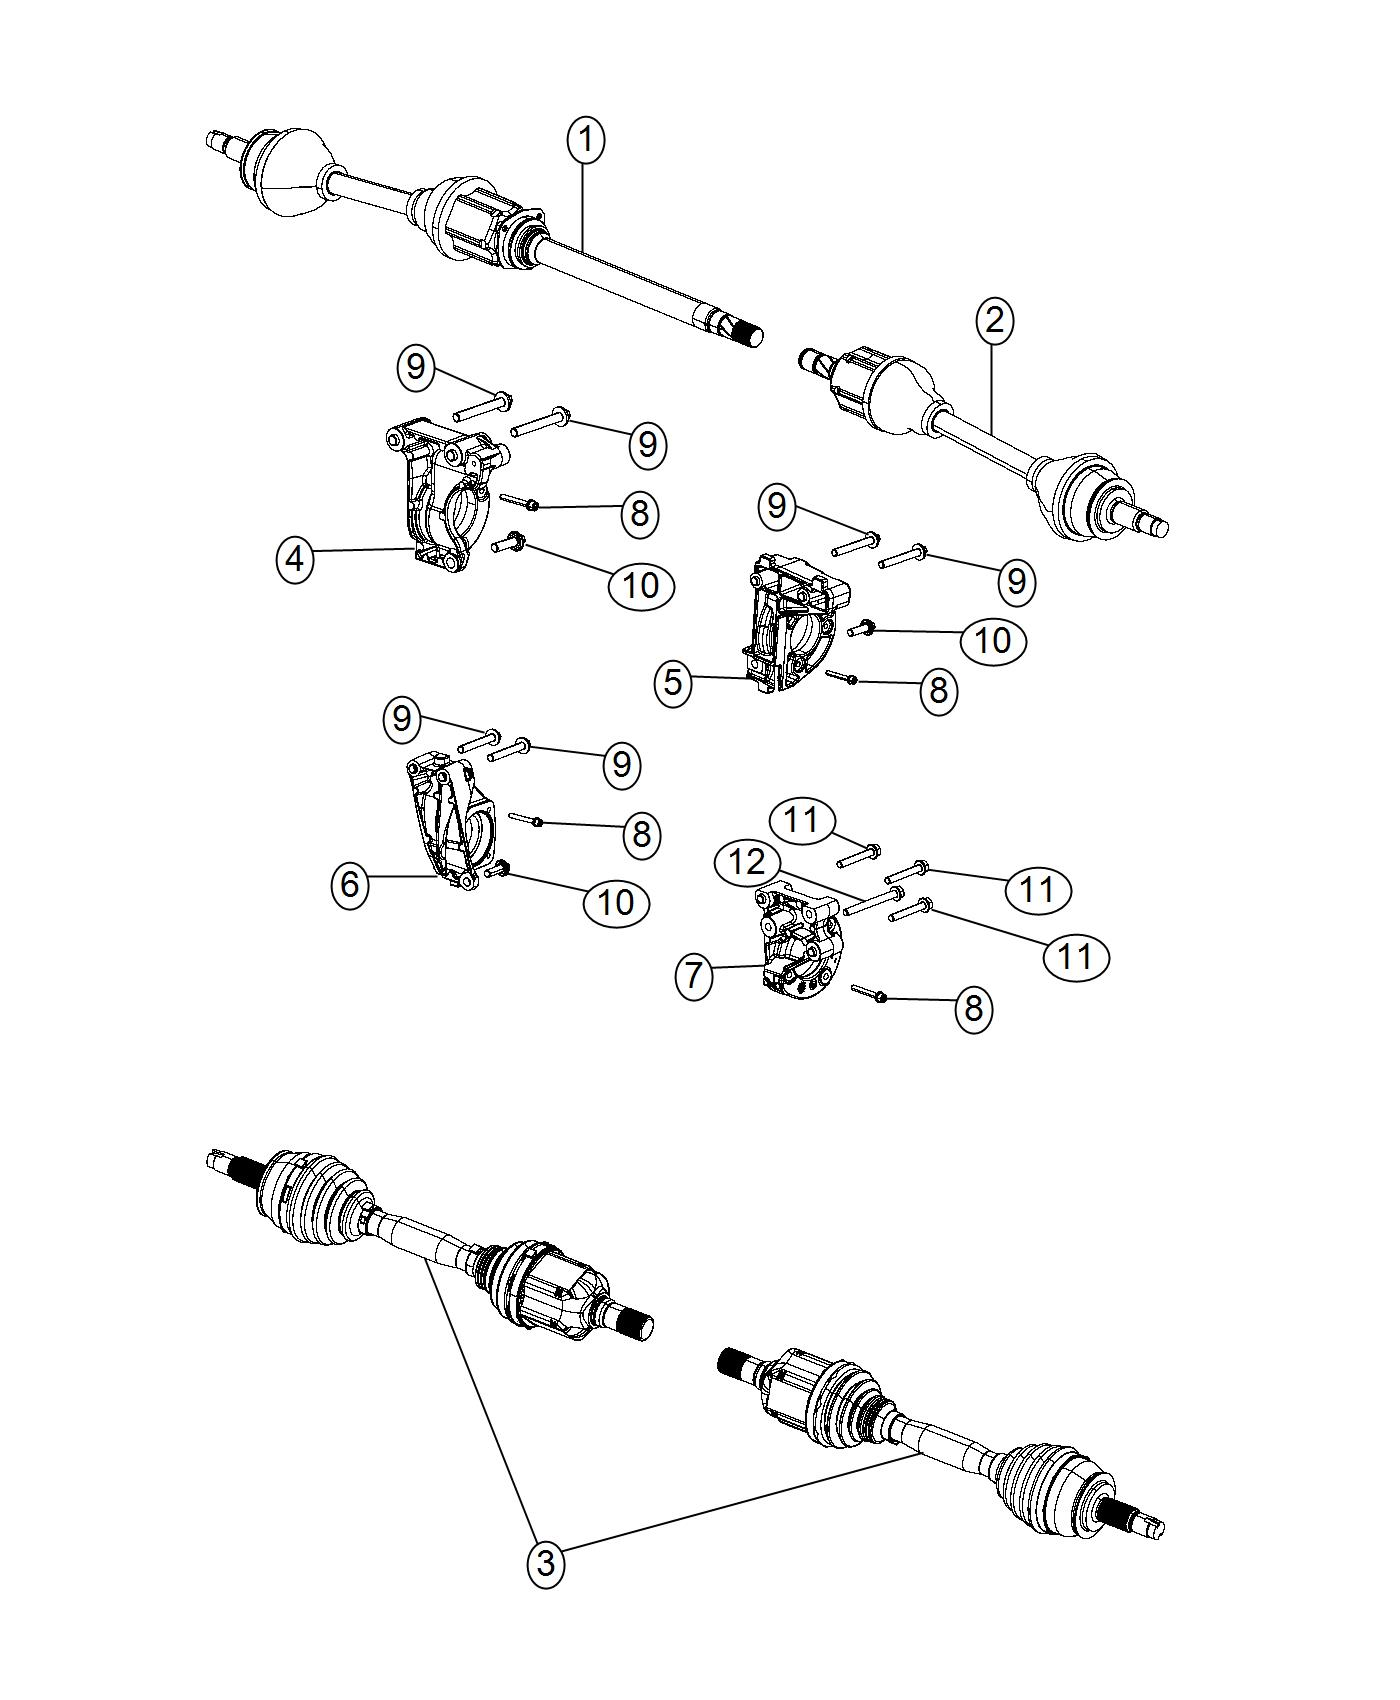 Jeep Renegade Support. Axle shaft. [6-speed c635 manual